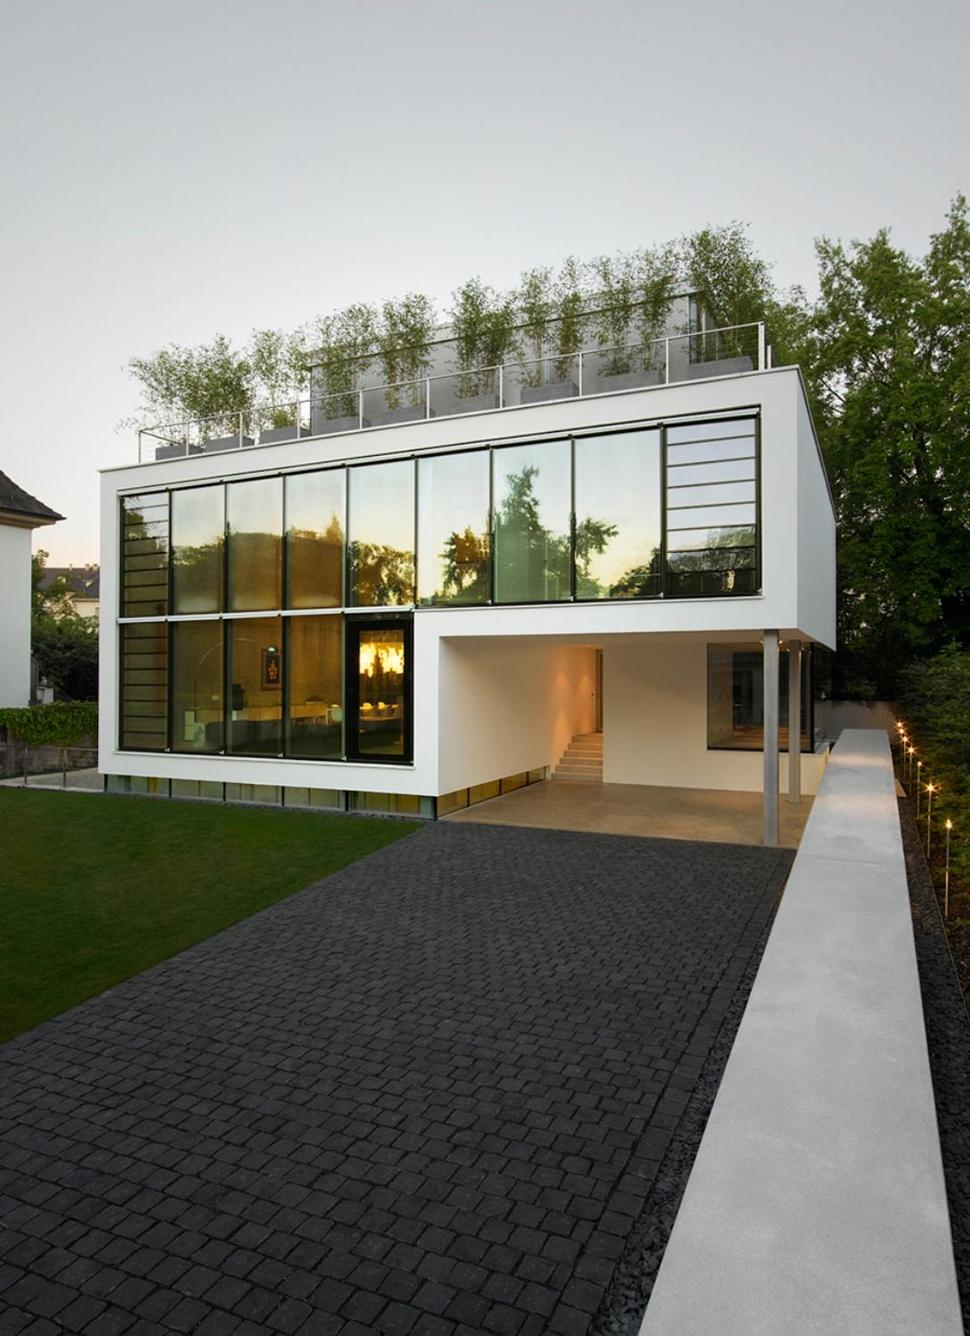 Energy Optimized House With Roof Terrace Louver Windows Exterior Window Shutters And Elevator